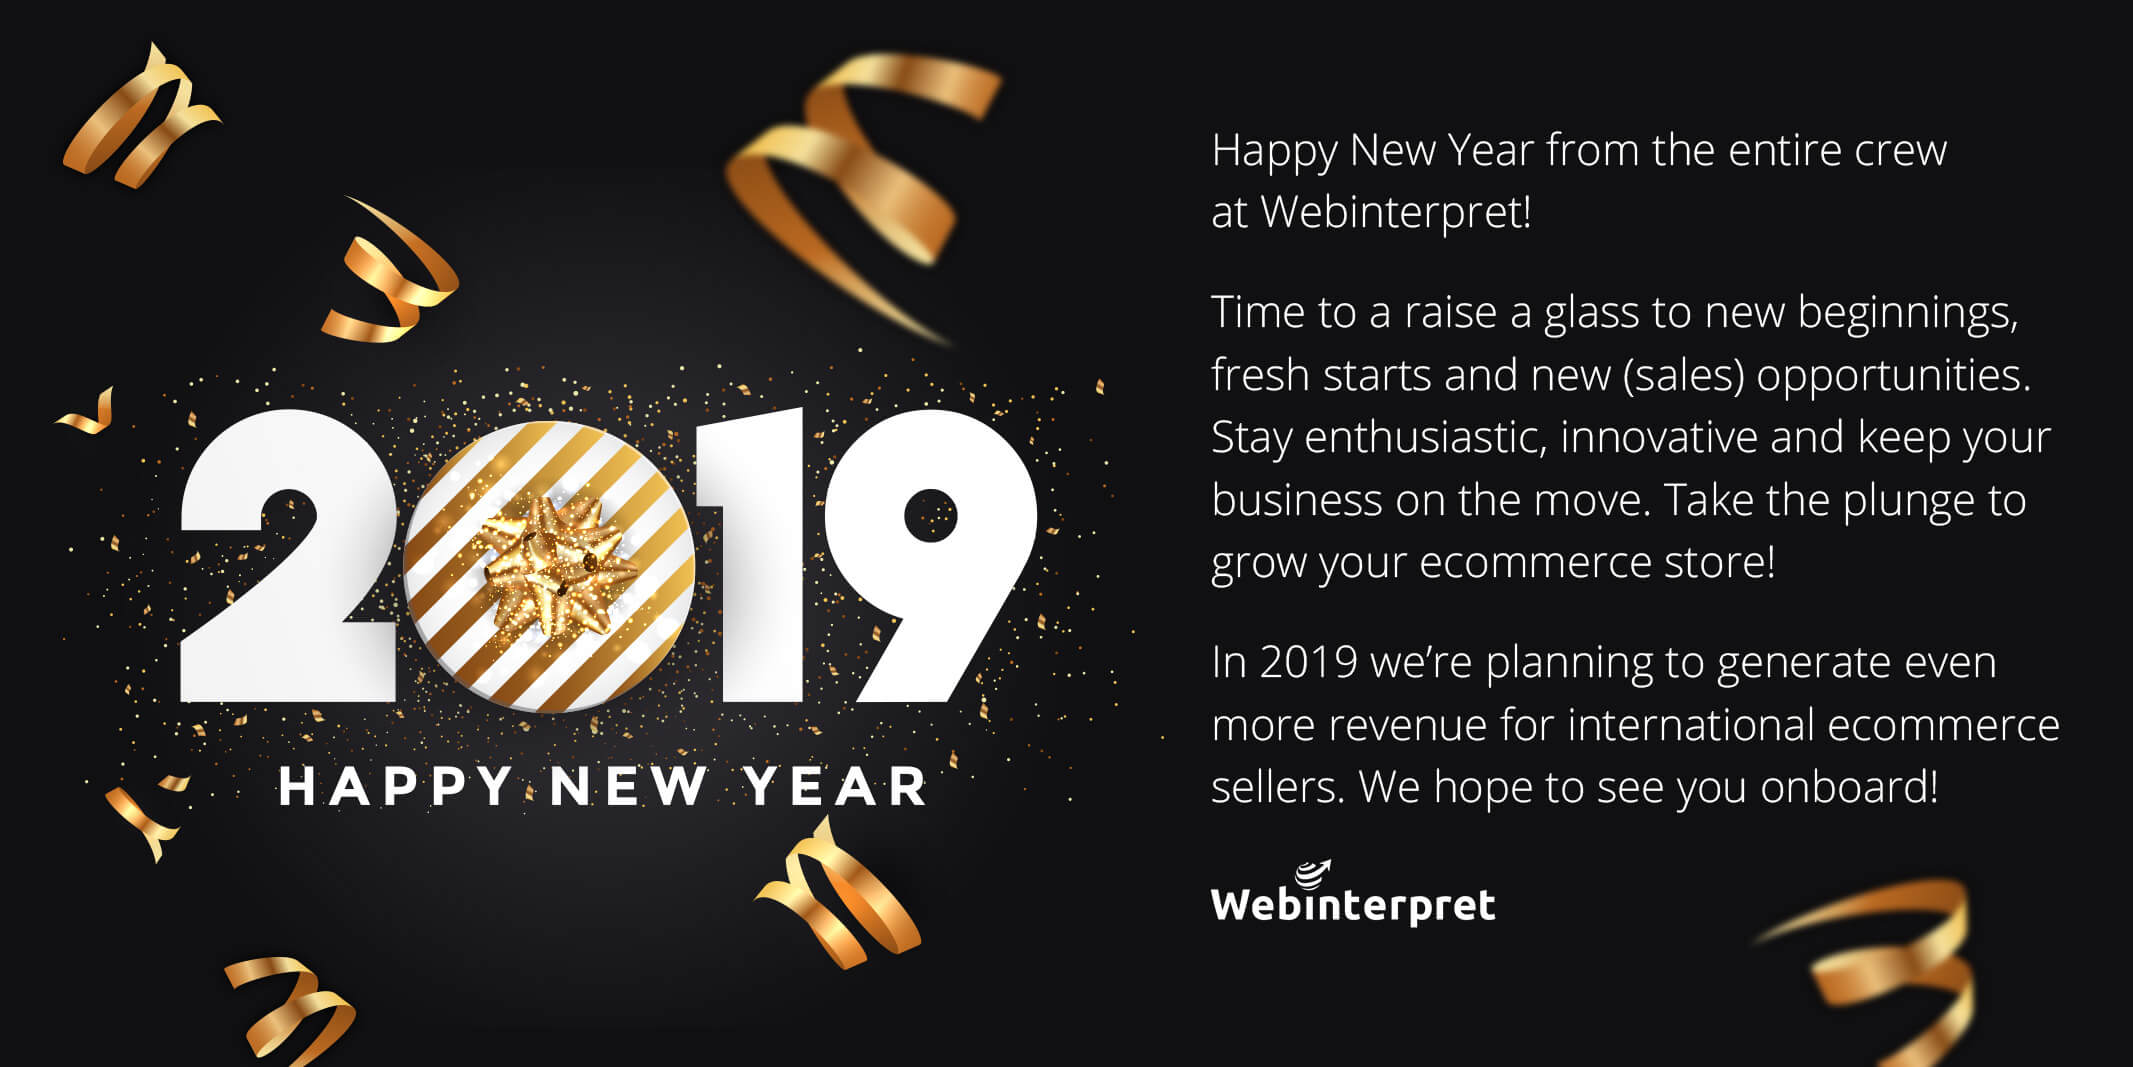 webinterpret ecommerce 2019 wishes